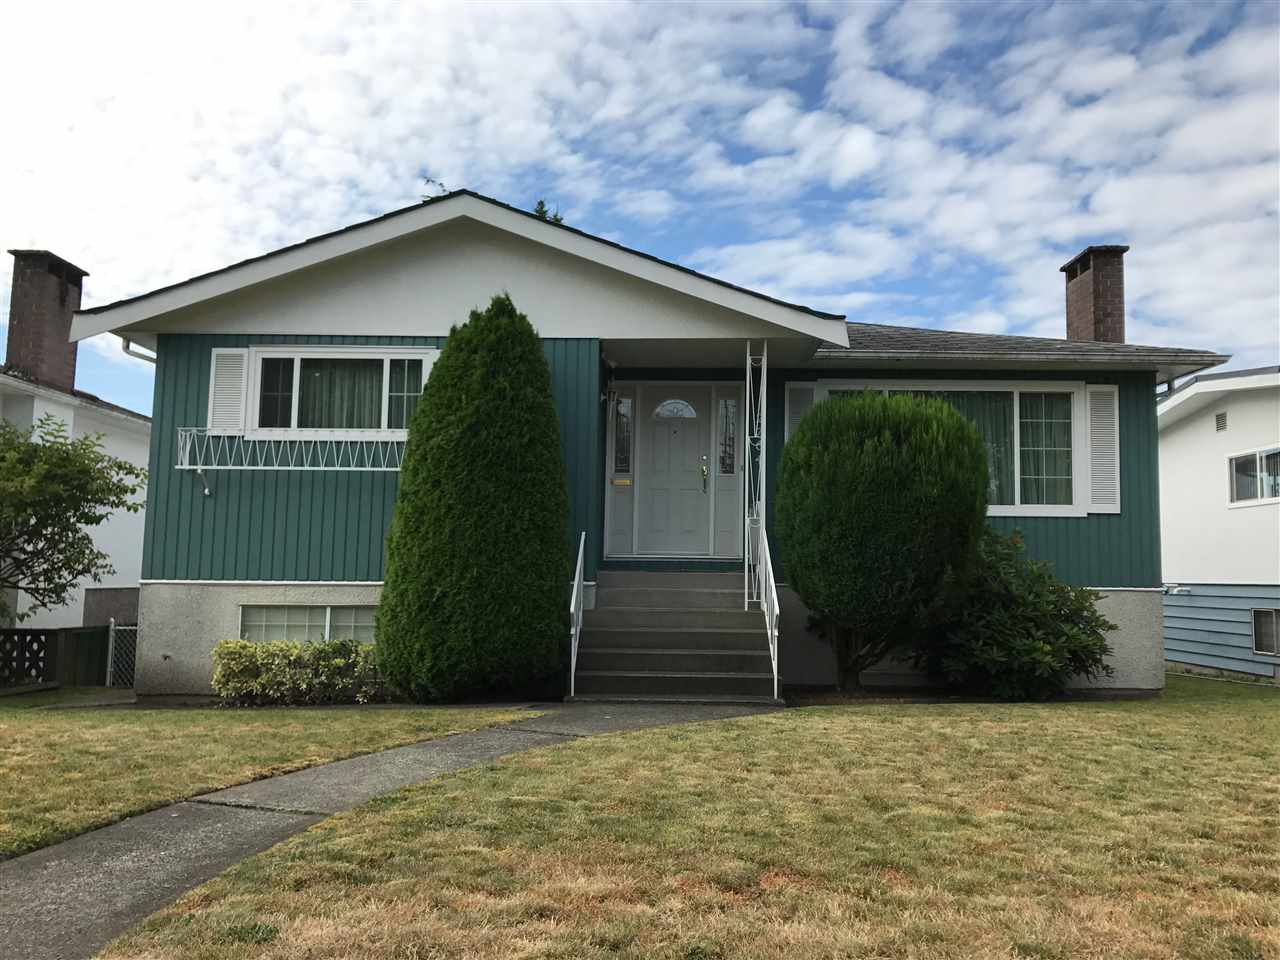 Main Photo: 2764 E 54TH AVENUE in Vancouver: Fraserview VE House for sale (Vancouver East)  : MLS®# R2189038